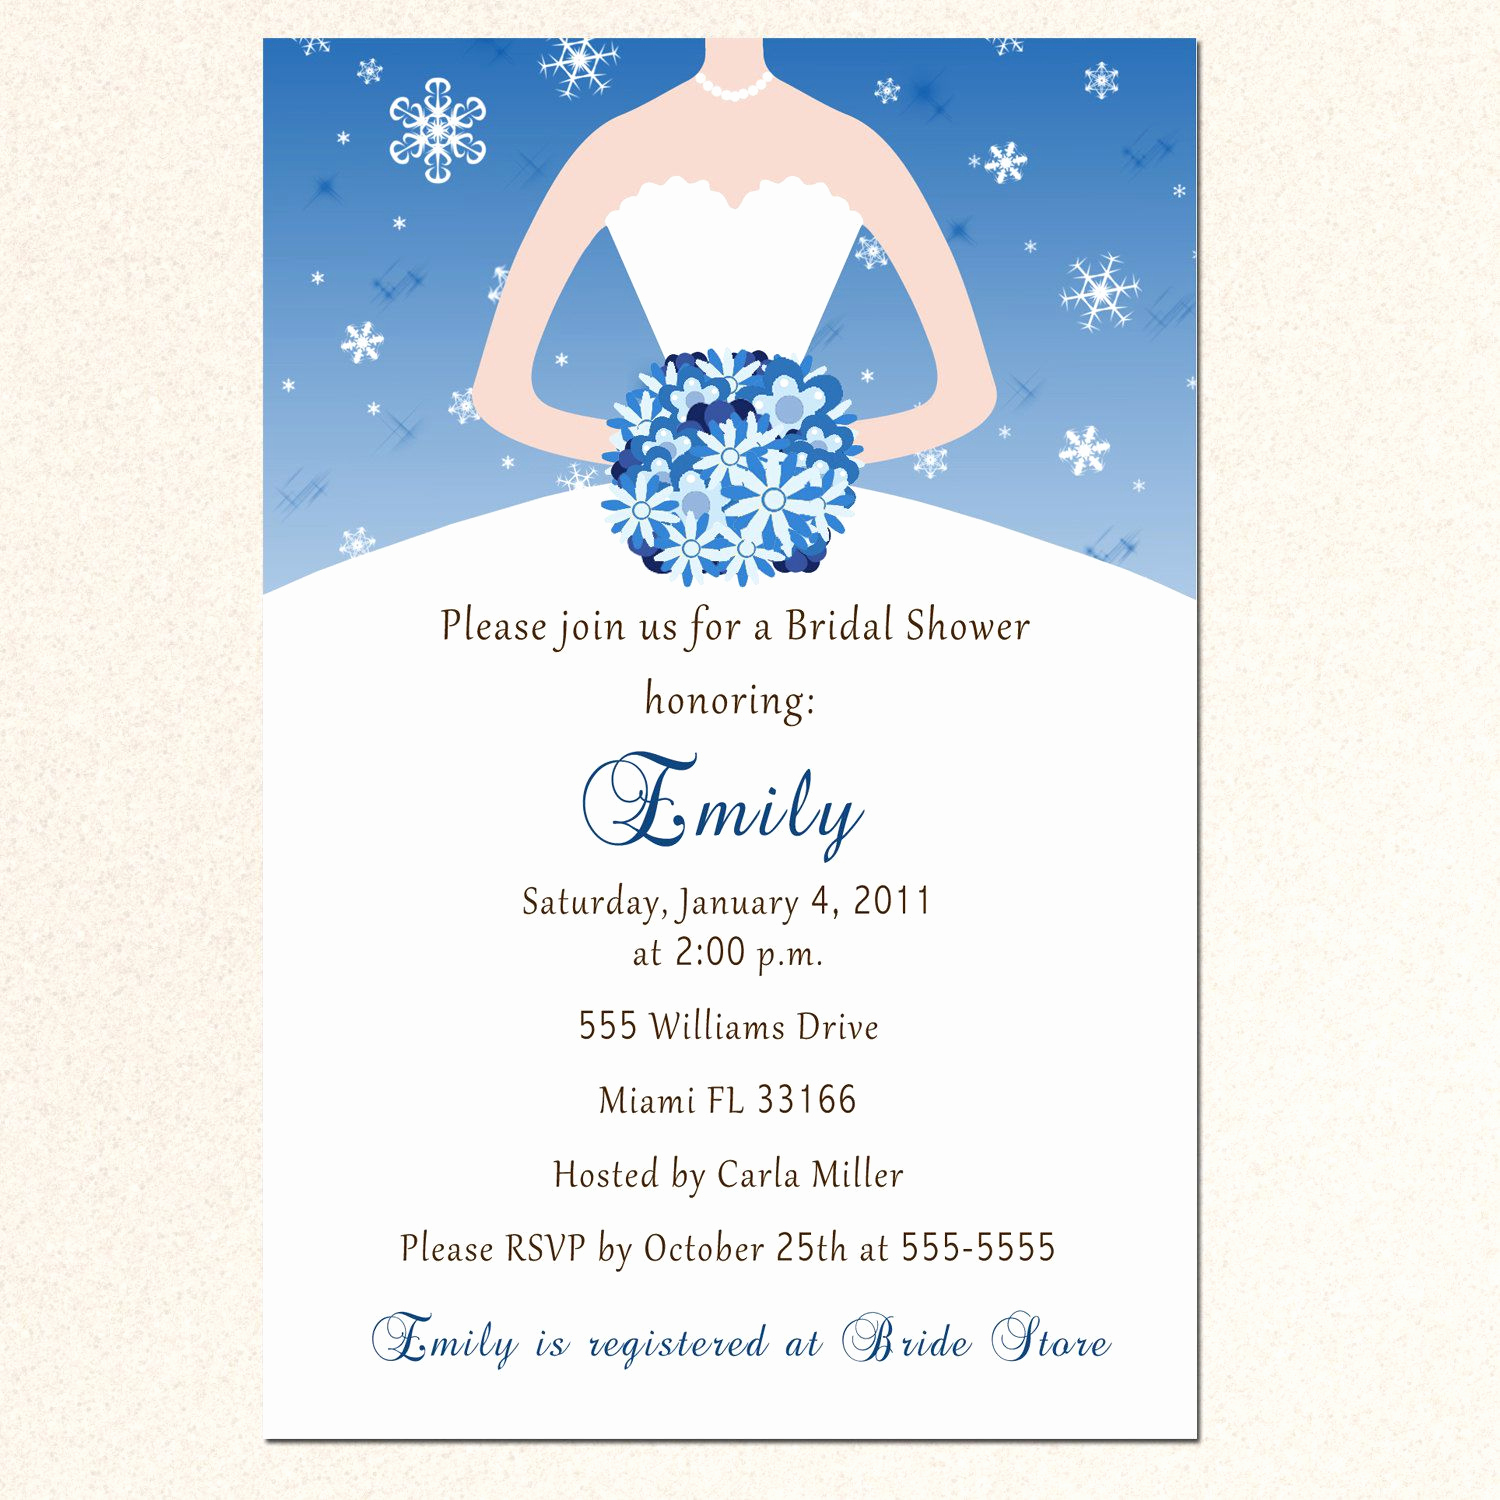 Printable Bridal Shower Invitation Templates Lovely Bridal Shower Invitation Templates Bridal Shower